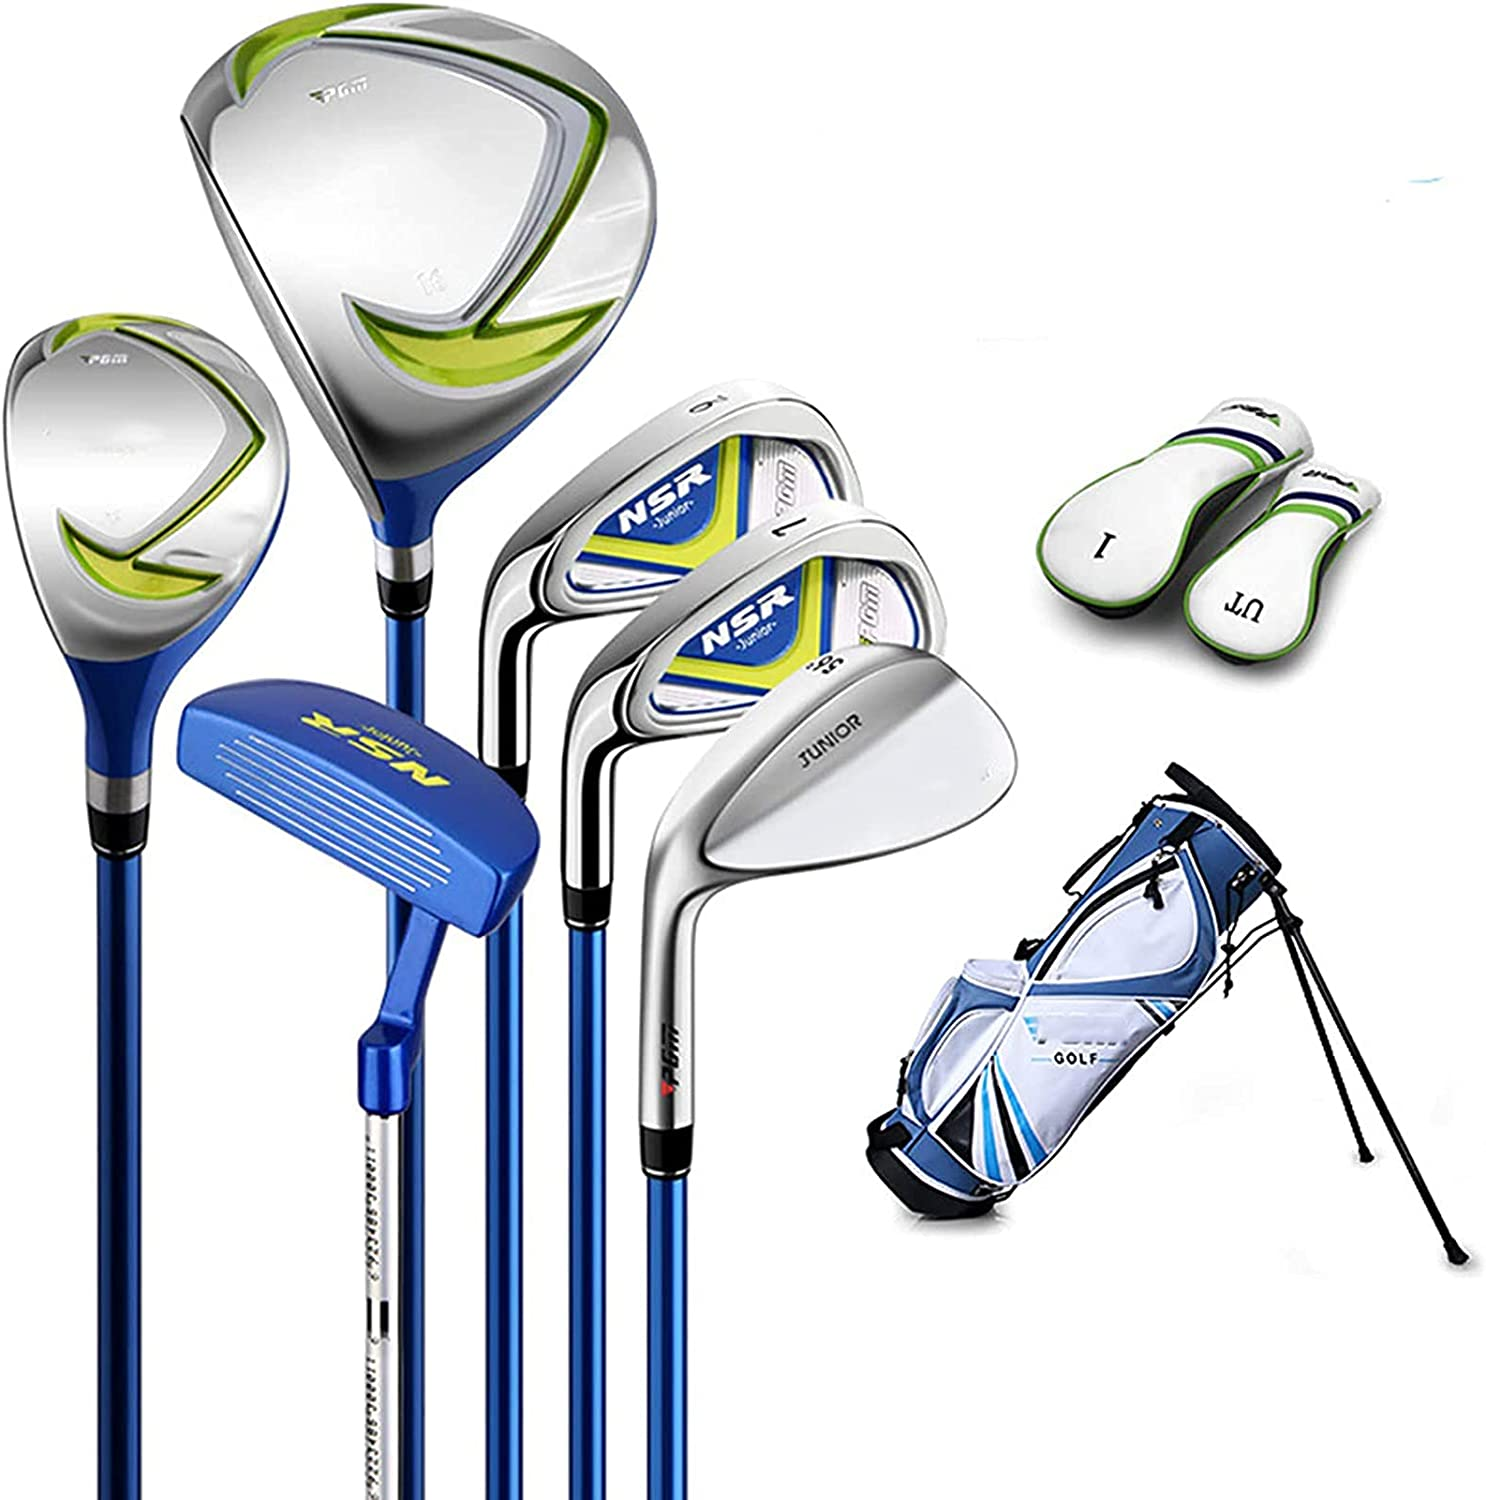 shjjyp Kid's Toy Seasonal Wrap Introduction Golf Clubs Set favorite Outdoor Todd Deluxe